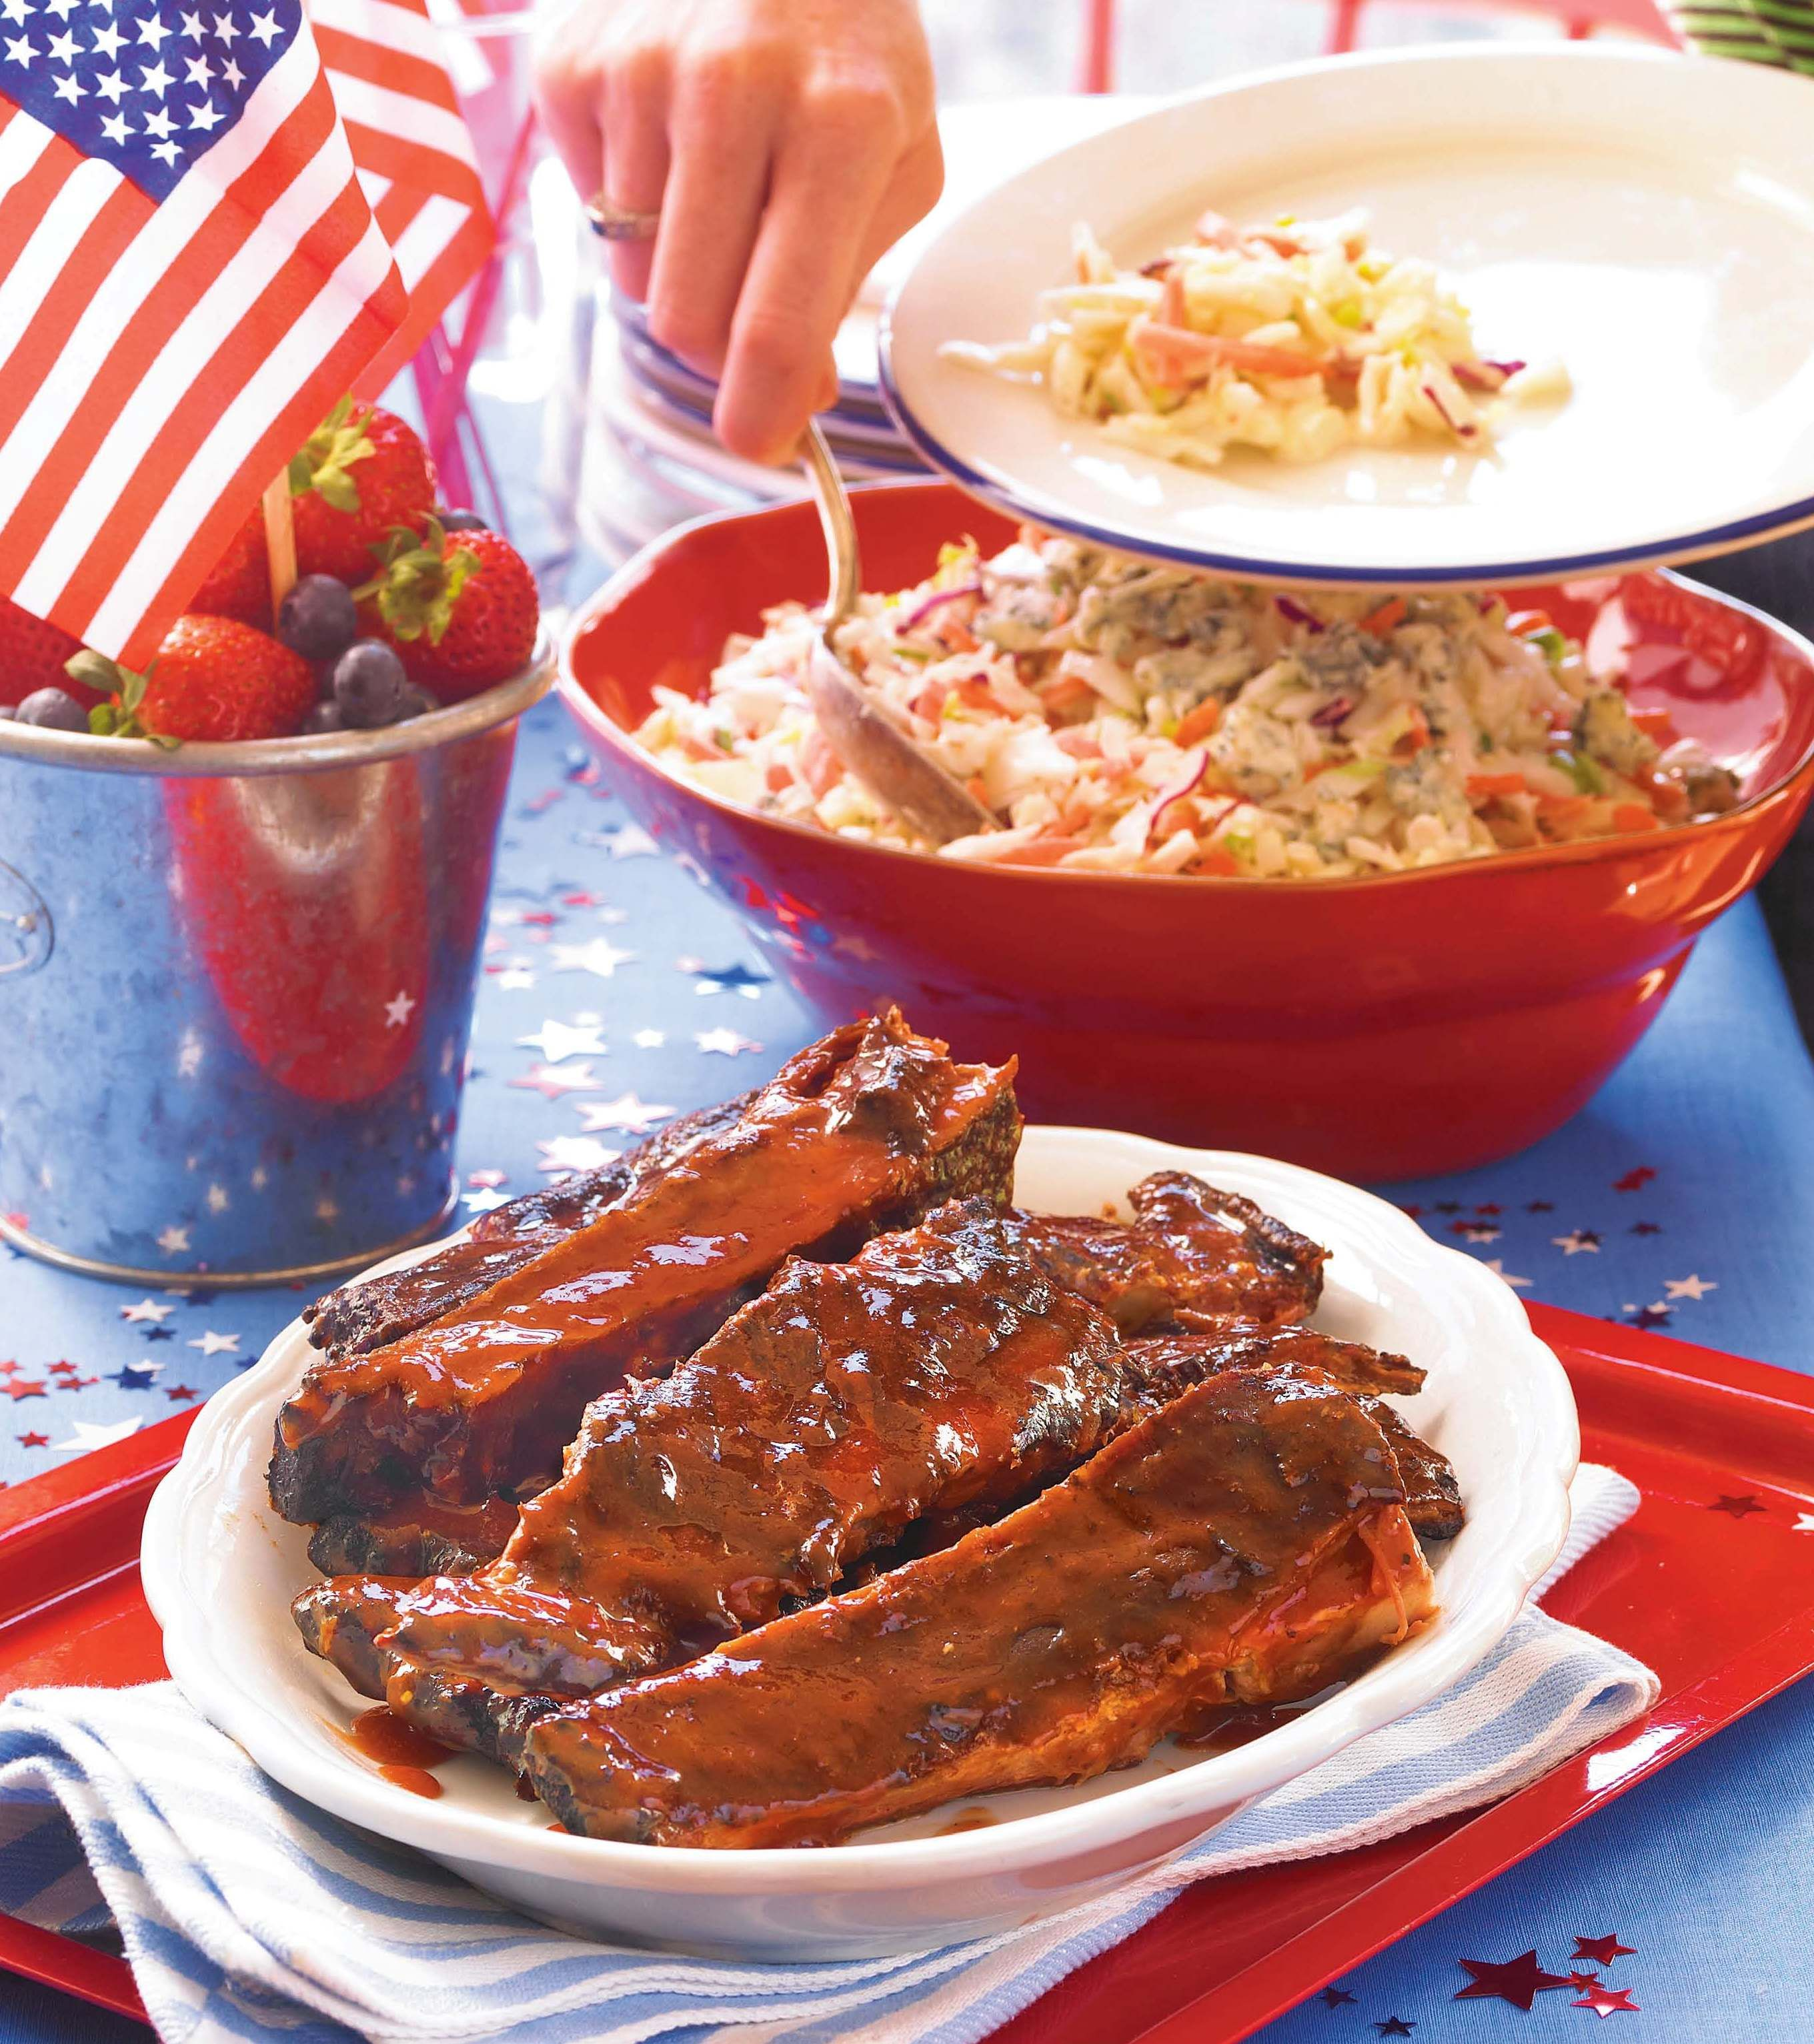 Good Dinner Recipes For 4: 4th Of July Recipe Ideas From